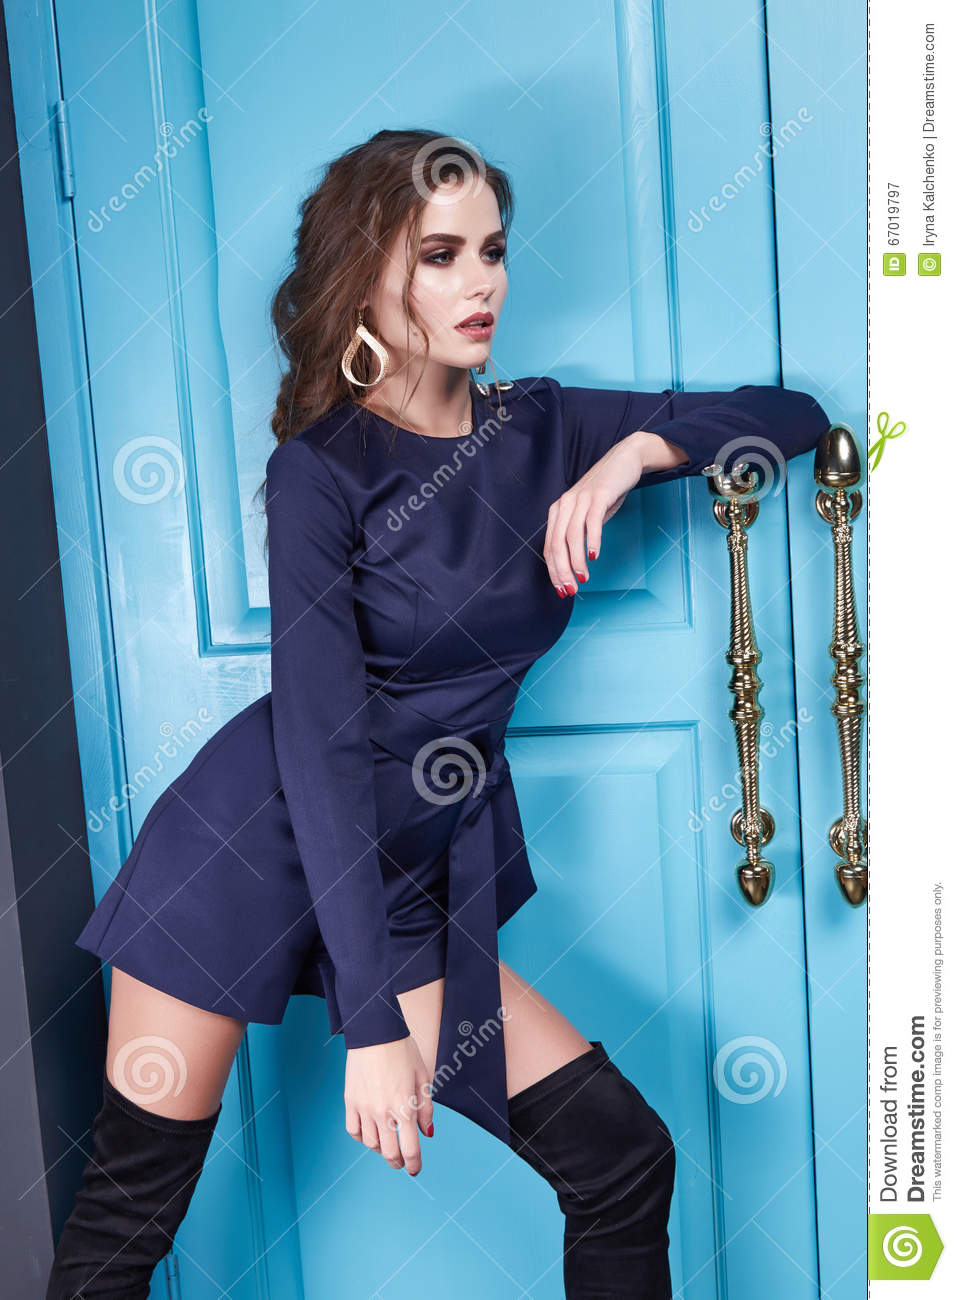 Beauty Woman Clothes Makeup Fashion Style Stock Image Image Of Design Cute 67019797